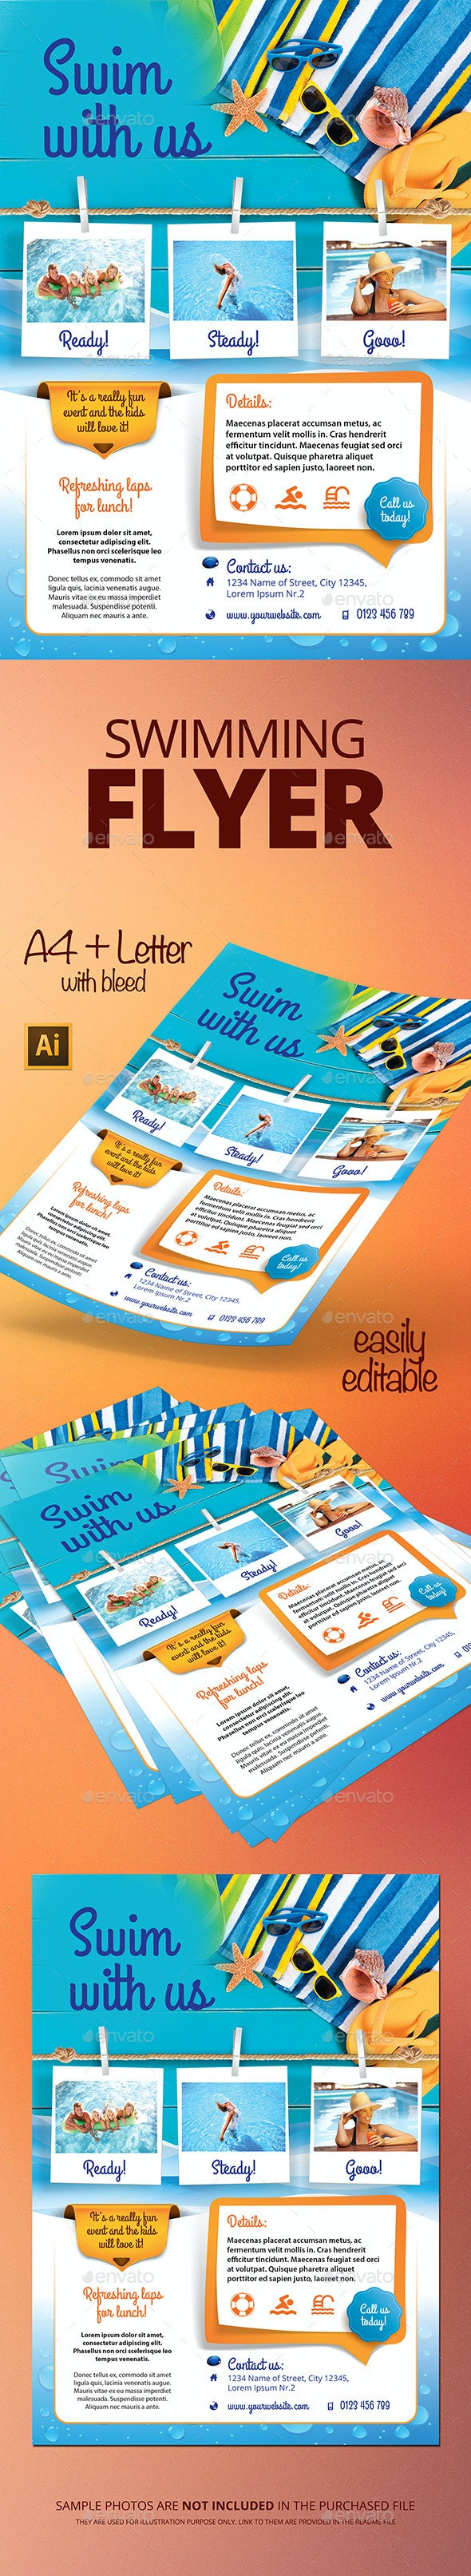 Swimming Flyer - Flyers Print Templates